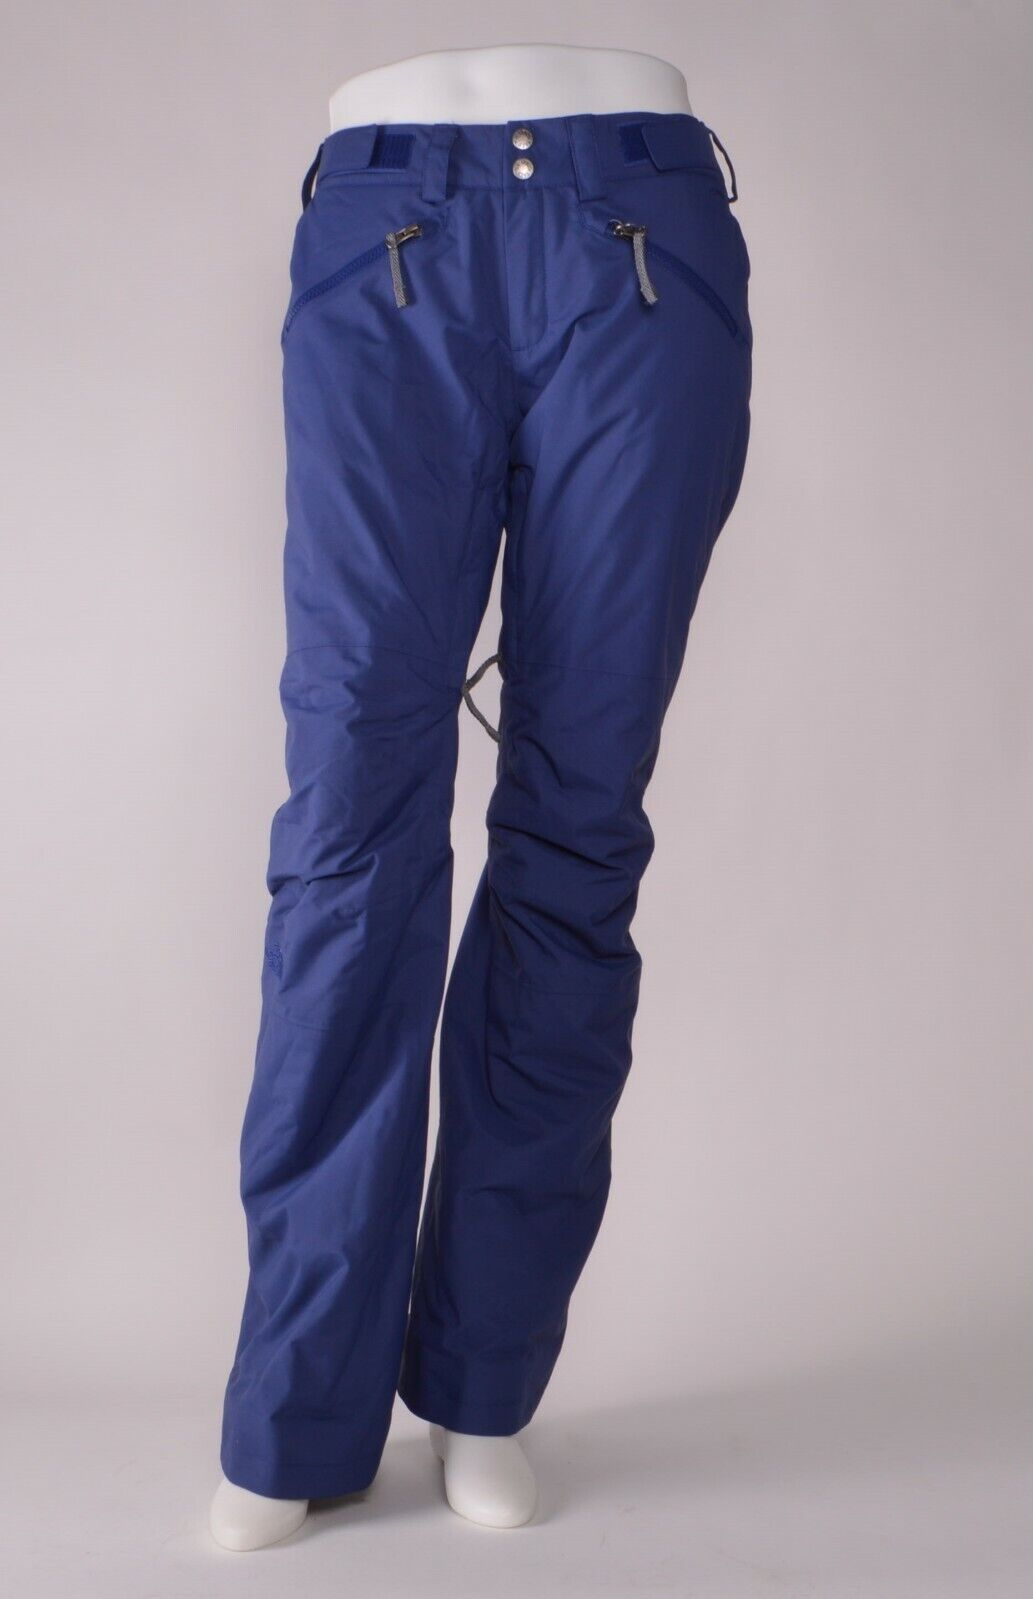 2020 NWT WOMENS THE NORTH FACE ABOUT A DAY SNOWBOARD PANT $112 S Flag Blue